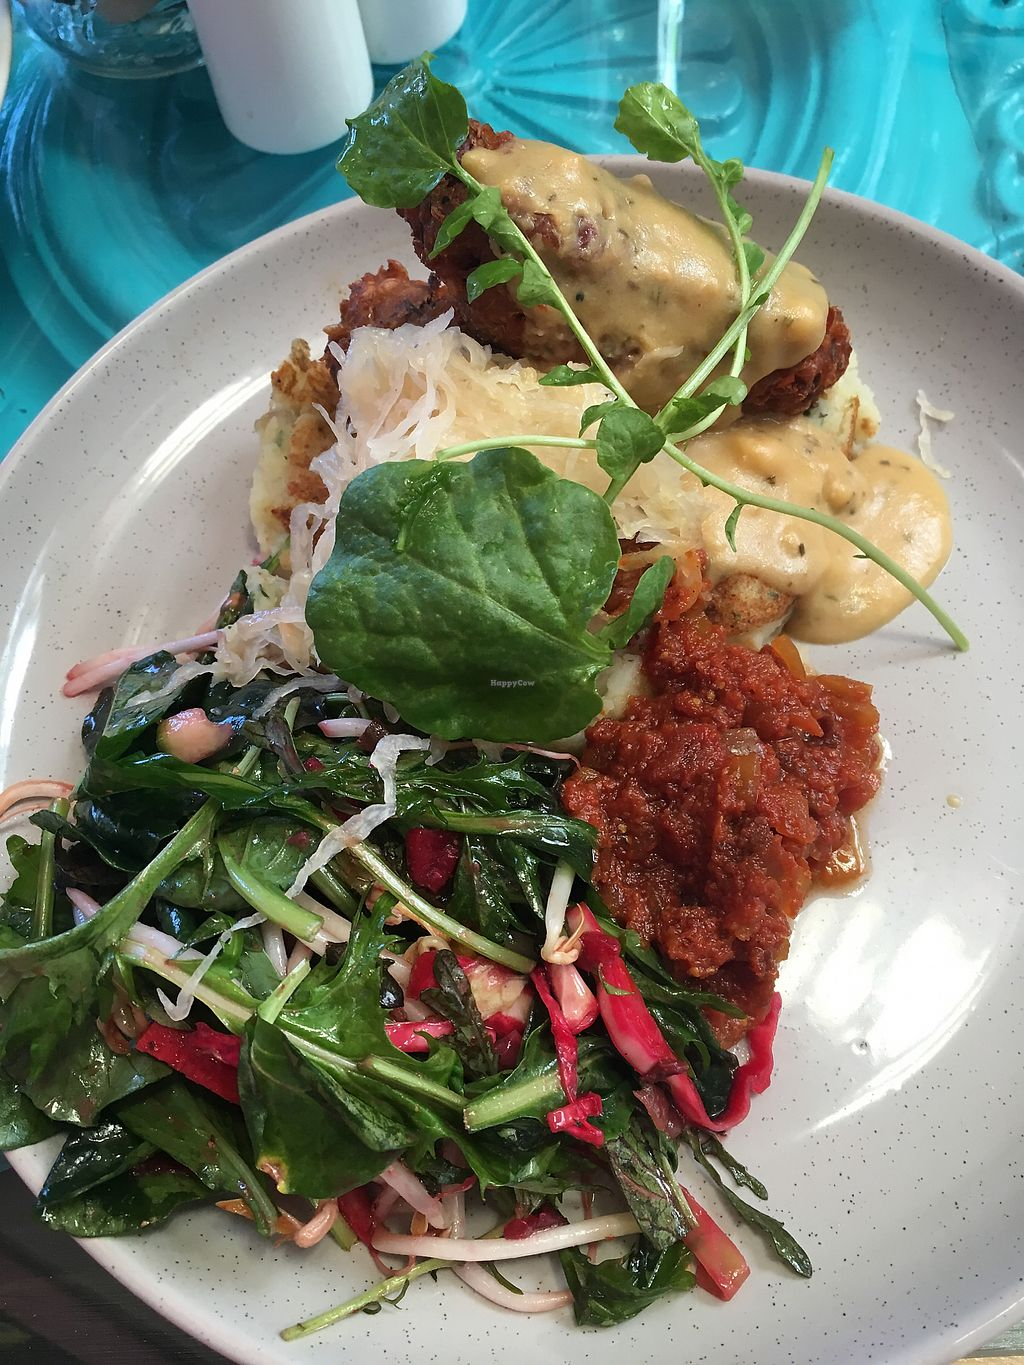 """Photo of East St Vegetarian Cafe and Bar  by <a href=""""/members/profile/perkonius"""">perkonius</a> <br/>Bangers and mash <br/> December 9, 2017  - <a href='/contact/abuse/image/37335/333665'>Report</a>"""